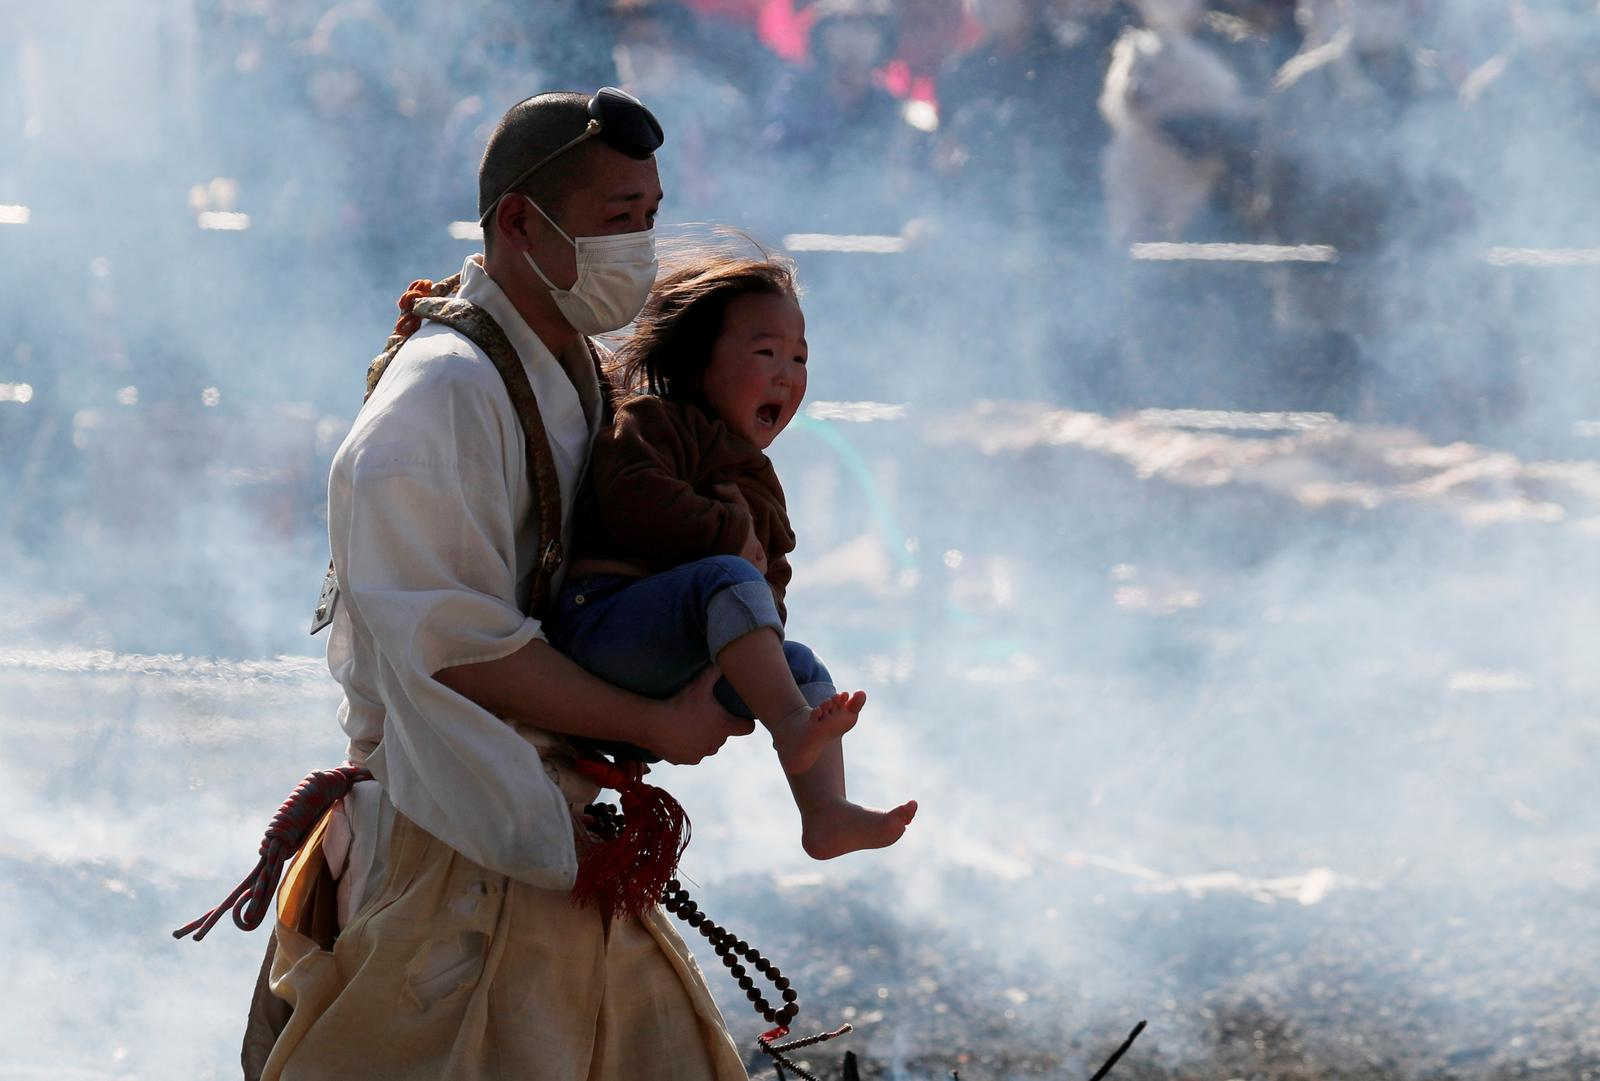 A Buddhist monk wearing a protective mask, amid the coronavirus disease (COVID-19) outbreak, carries a child as he walks across smoldering hot ground at the fire-walking festival, called hiwatari matsuri in Japanese, at Mt.Takao in Tokyo, Japan, March 14, 2021. Photo: Reuters